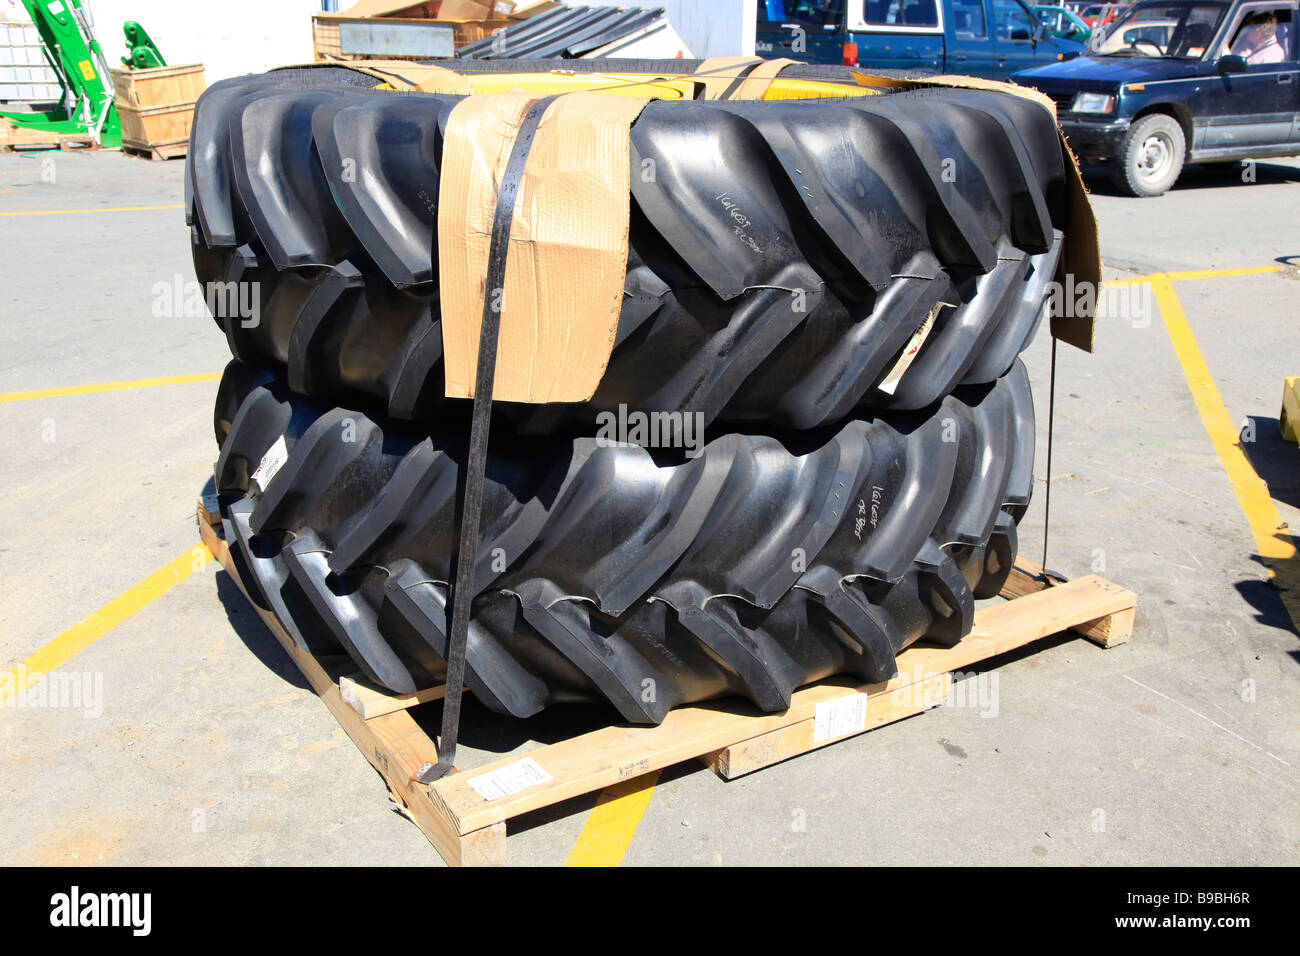 a pair of tractor tyres on pallet,Ashburton,Mid Canterbury,South Island,New Zealand - Stock Image